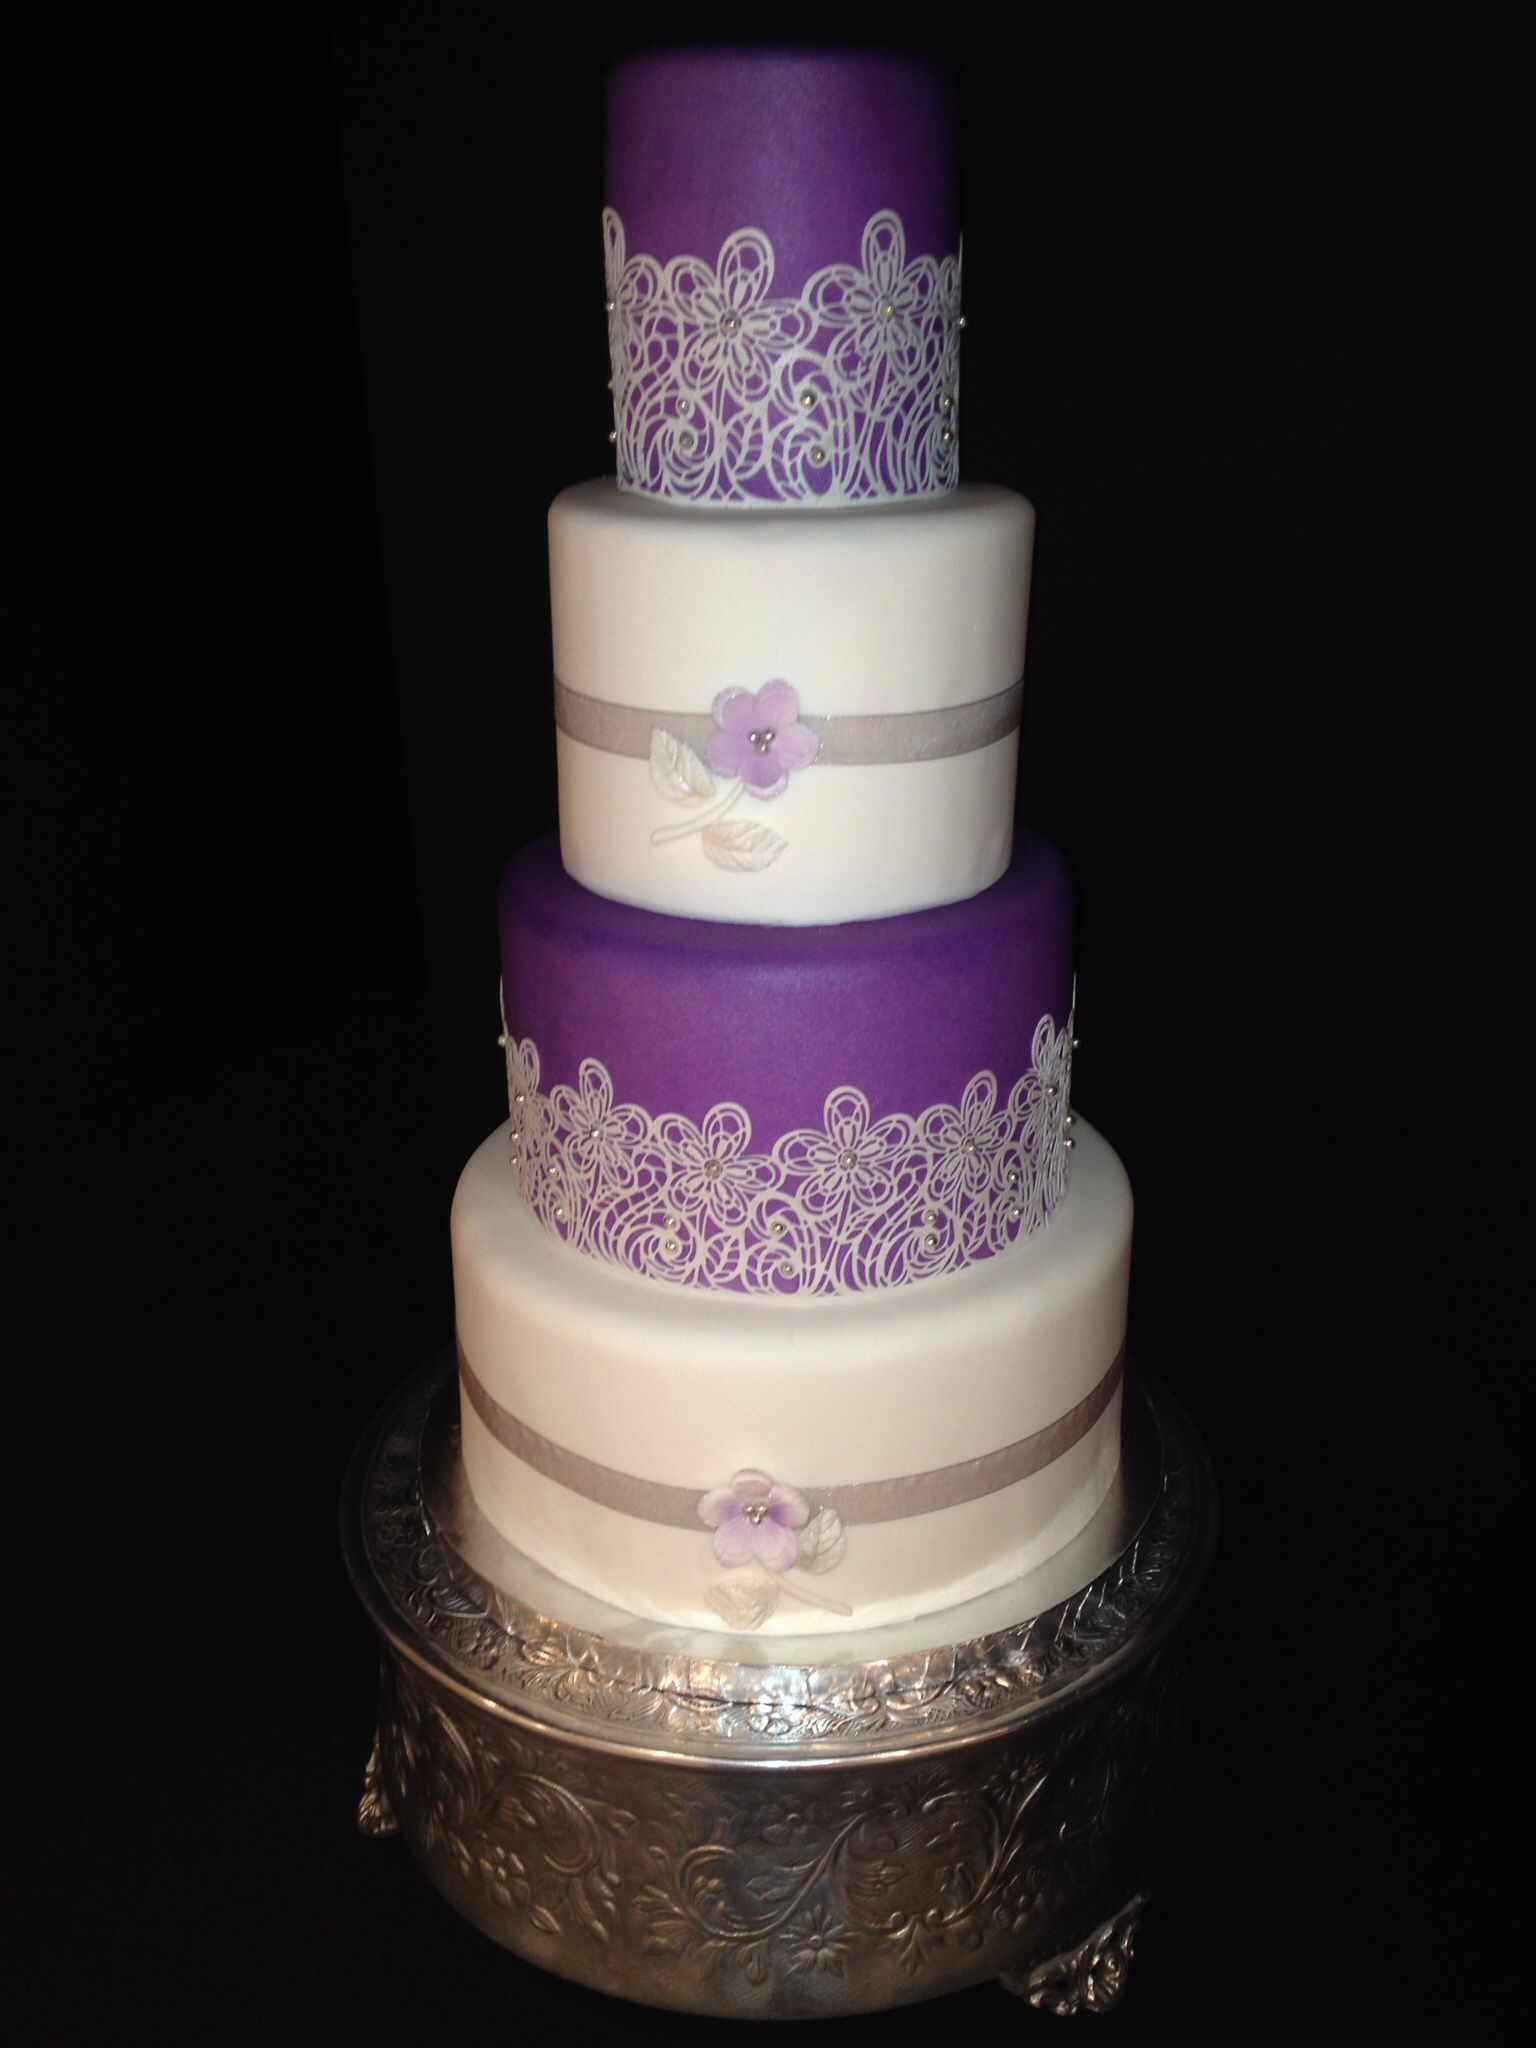 Kerryus lavender and silver wedding cake by m and t events m and t